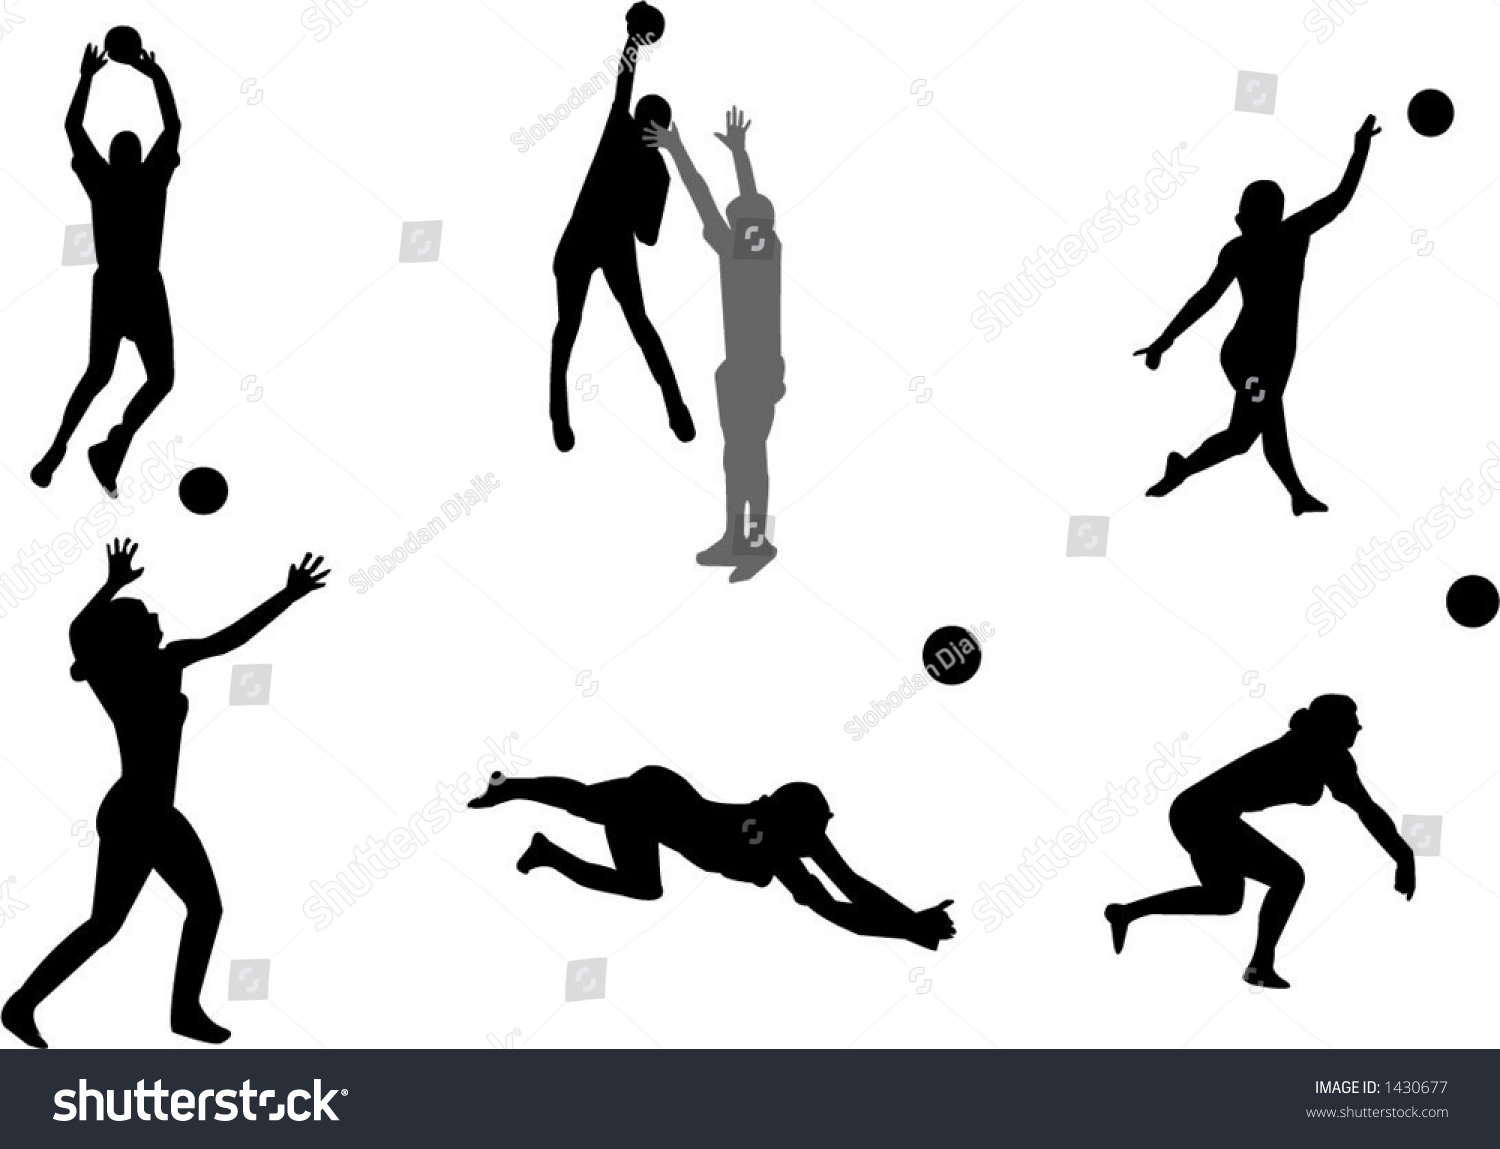 Volleyball Silhouettes Stock Vector Illustration 1430677